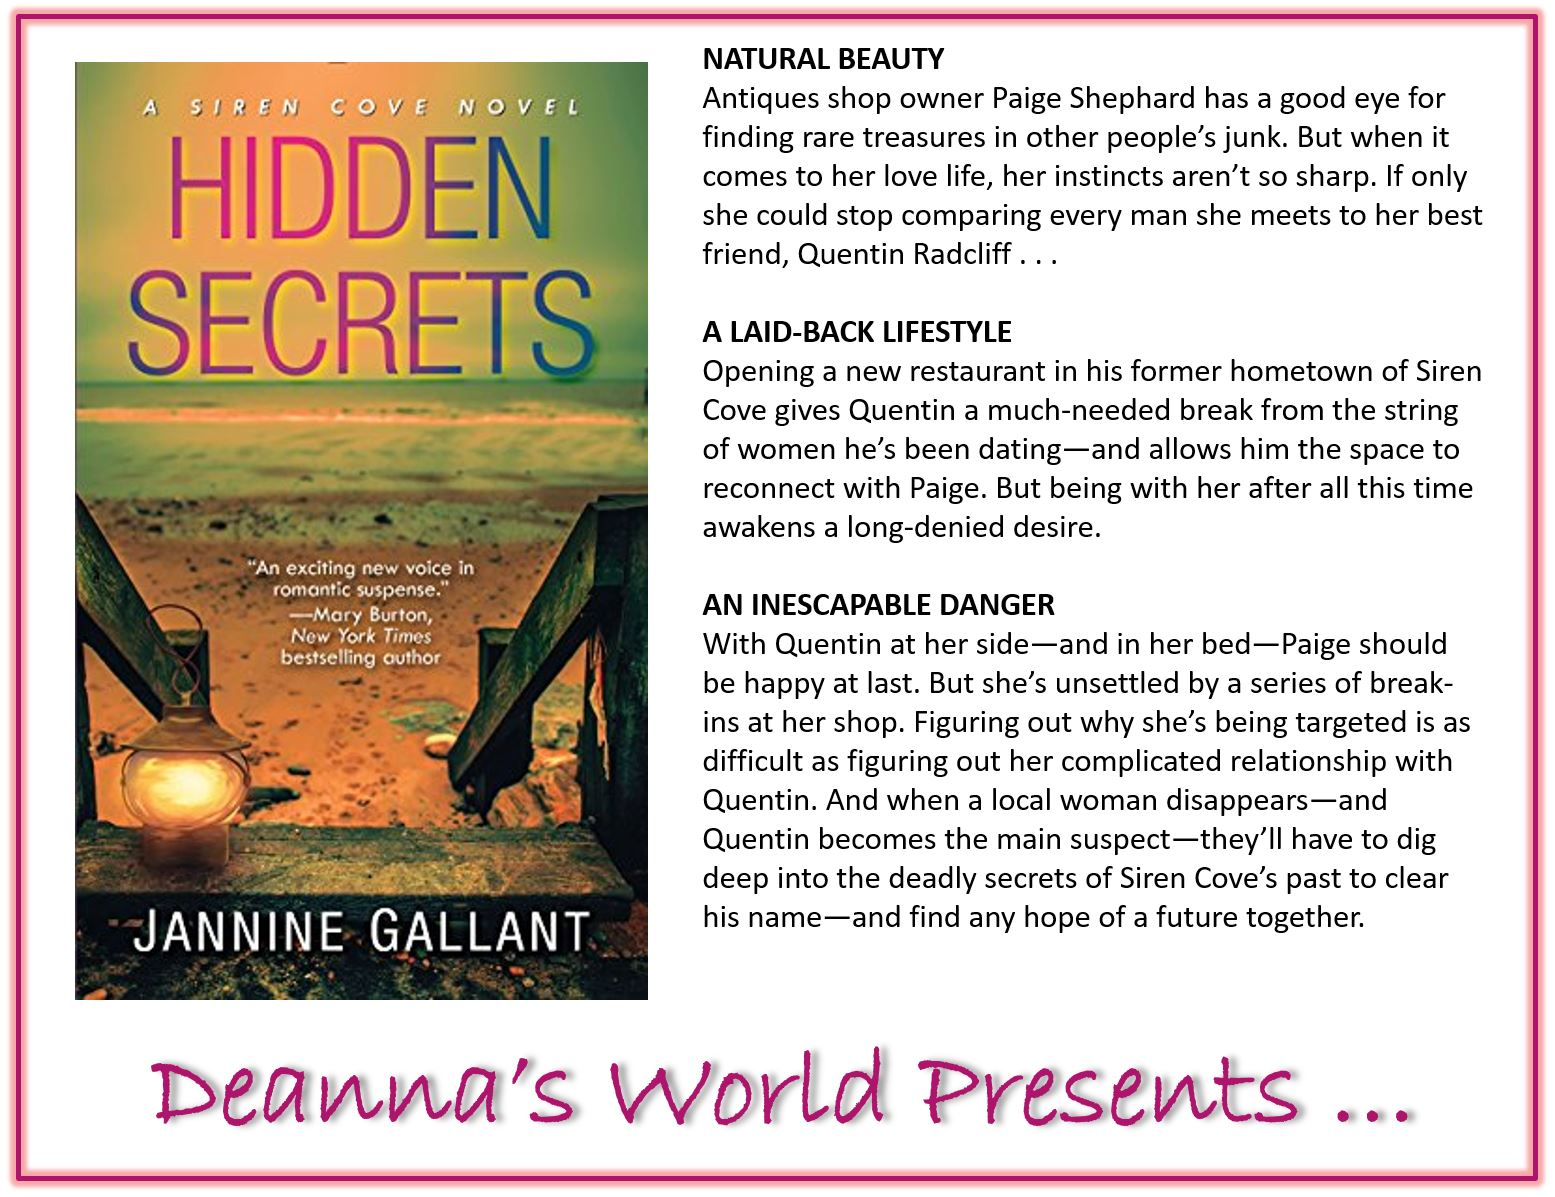 Hidden Secrets by Jannine Gallant blurb